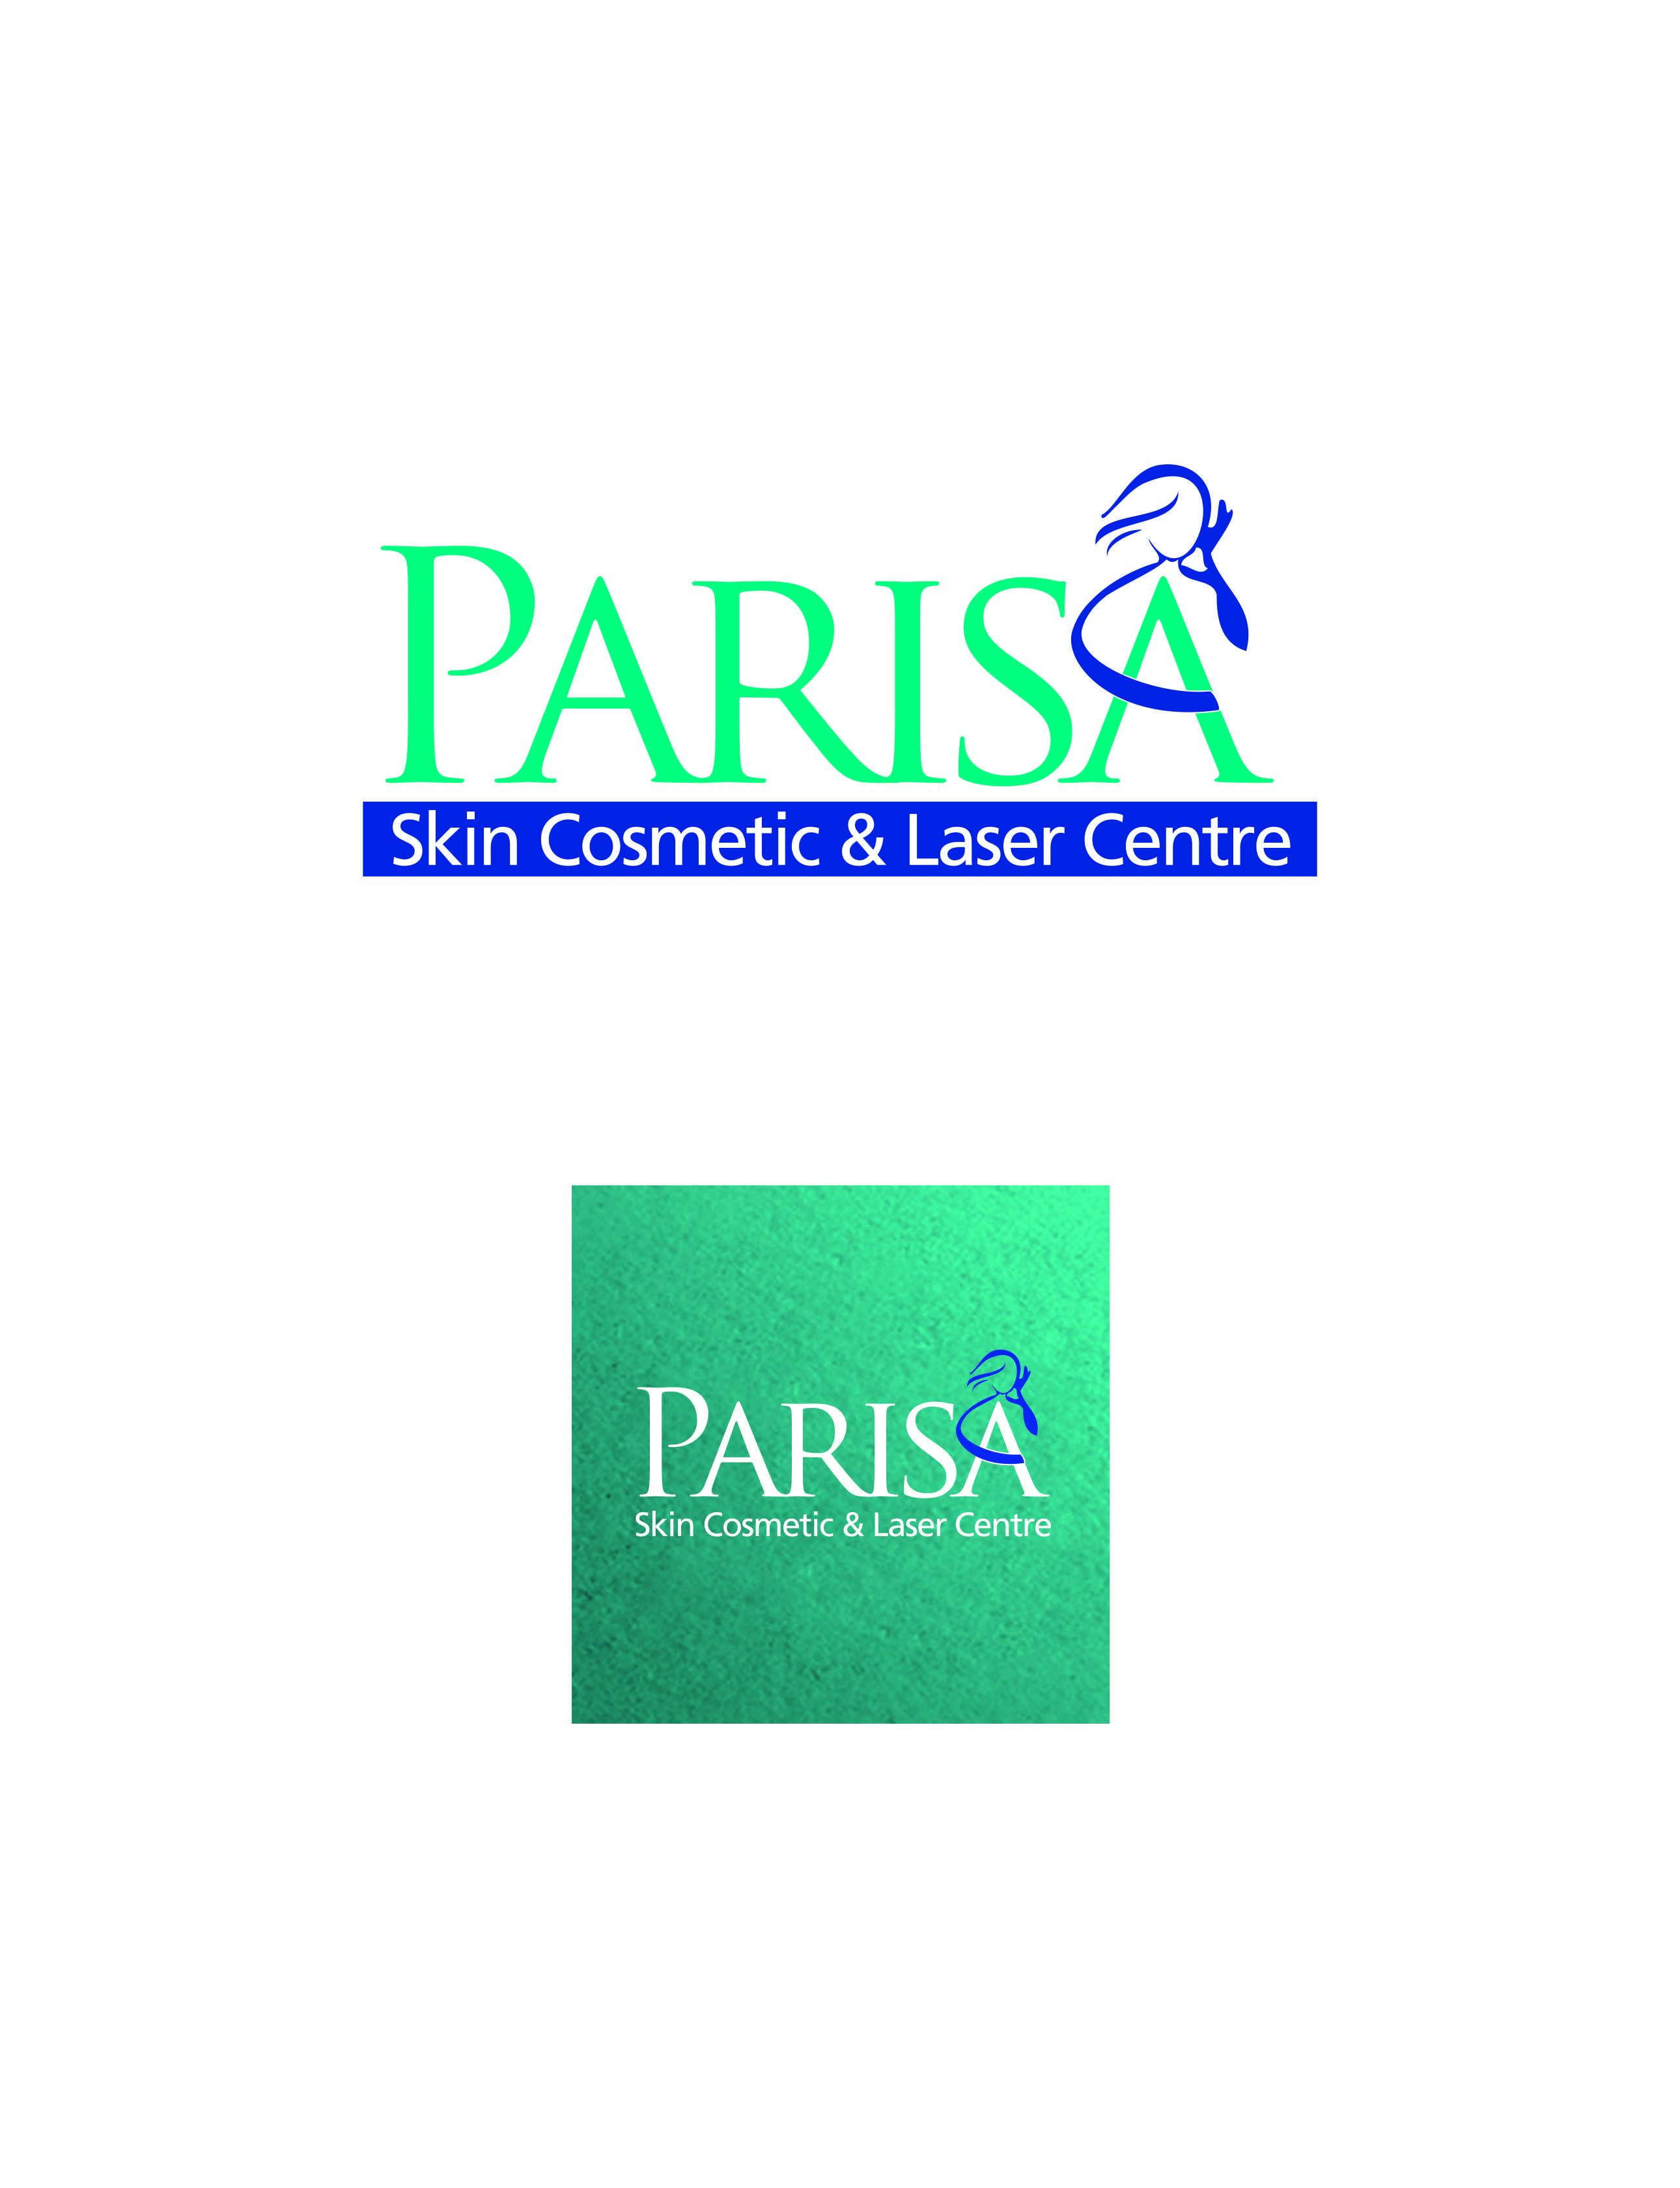 Parisa Skin Cosmetic And Laser Centre